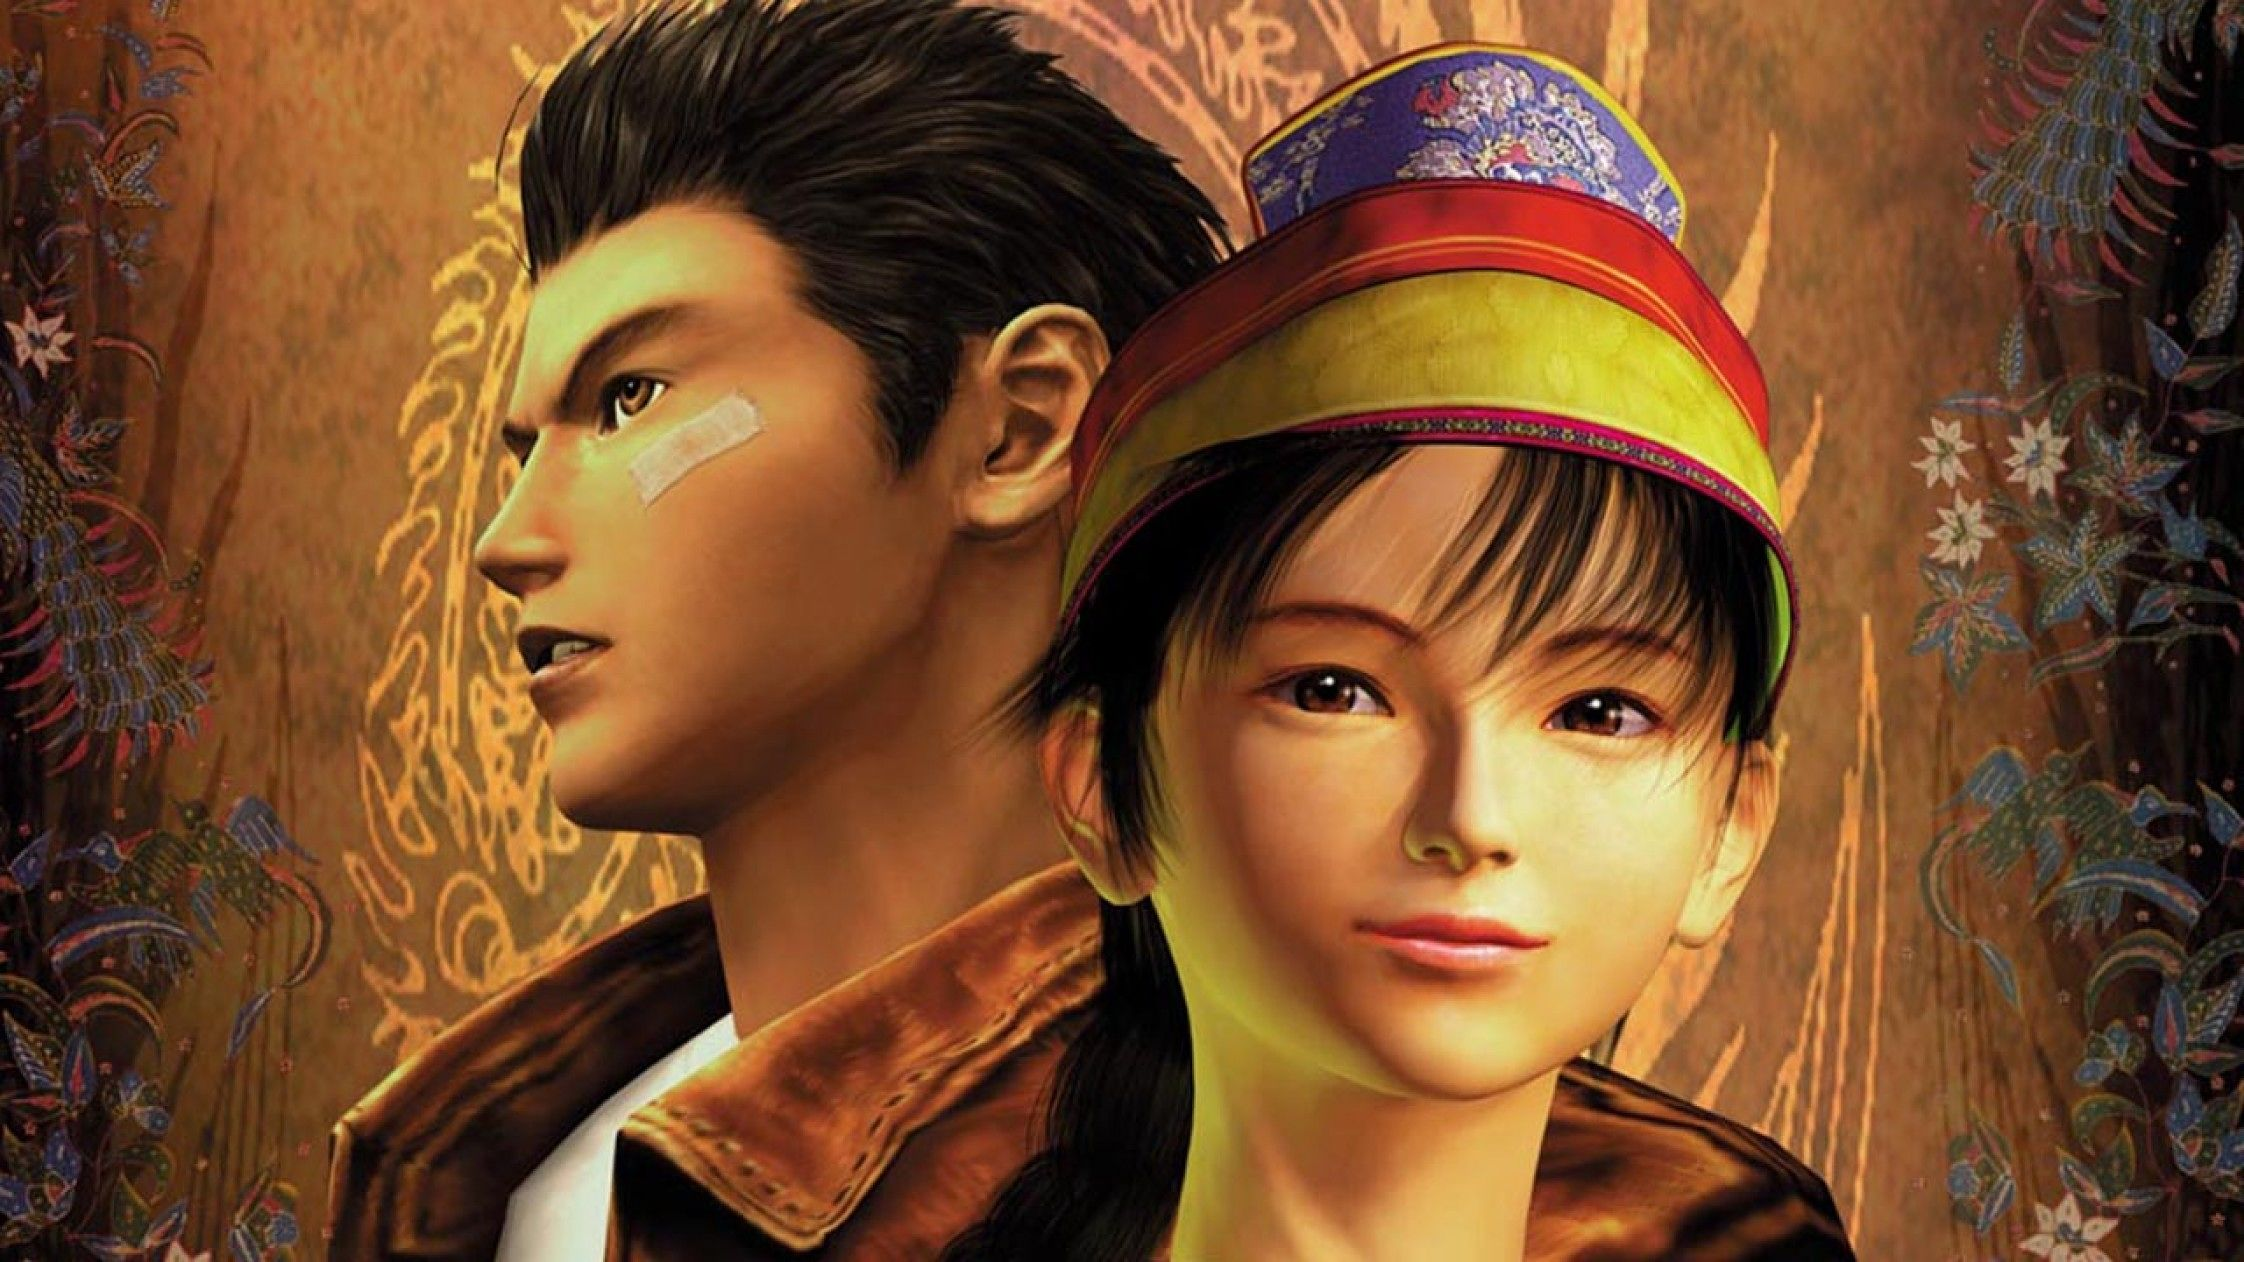 7d031e24bd3a5 Shenmue 3: release date, trailers and news | TechRadar